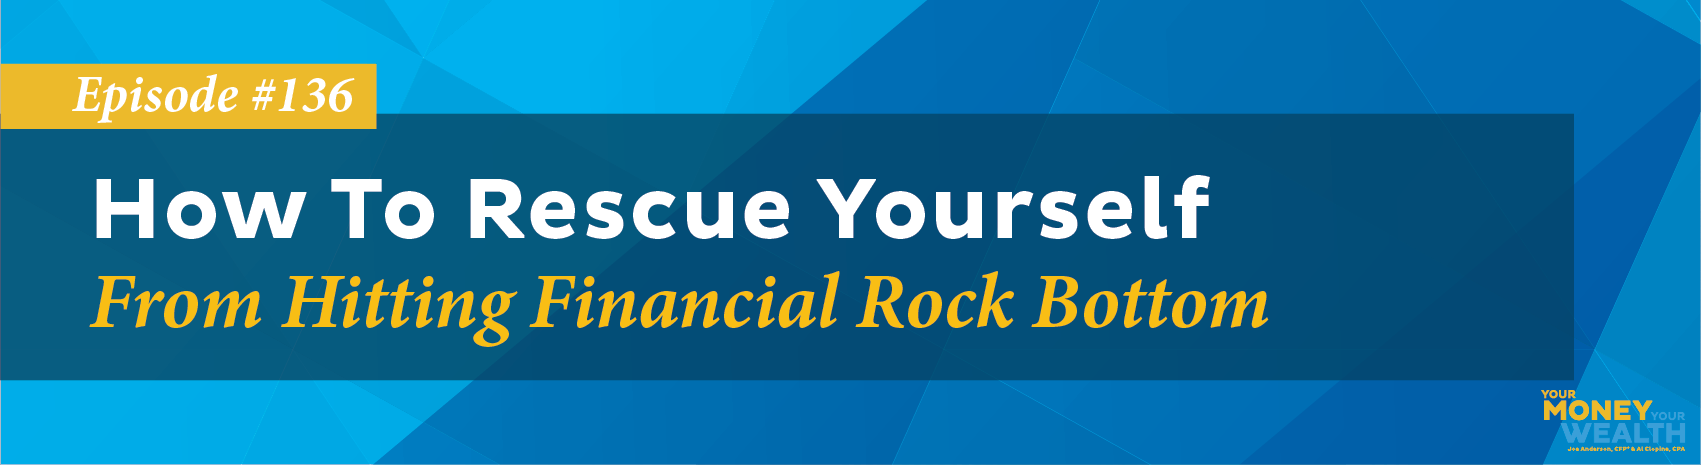 How To Rescue Yourself From Hitting Financial Rock Bottom